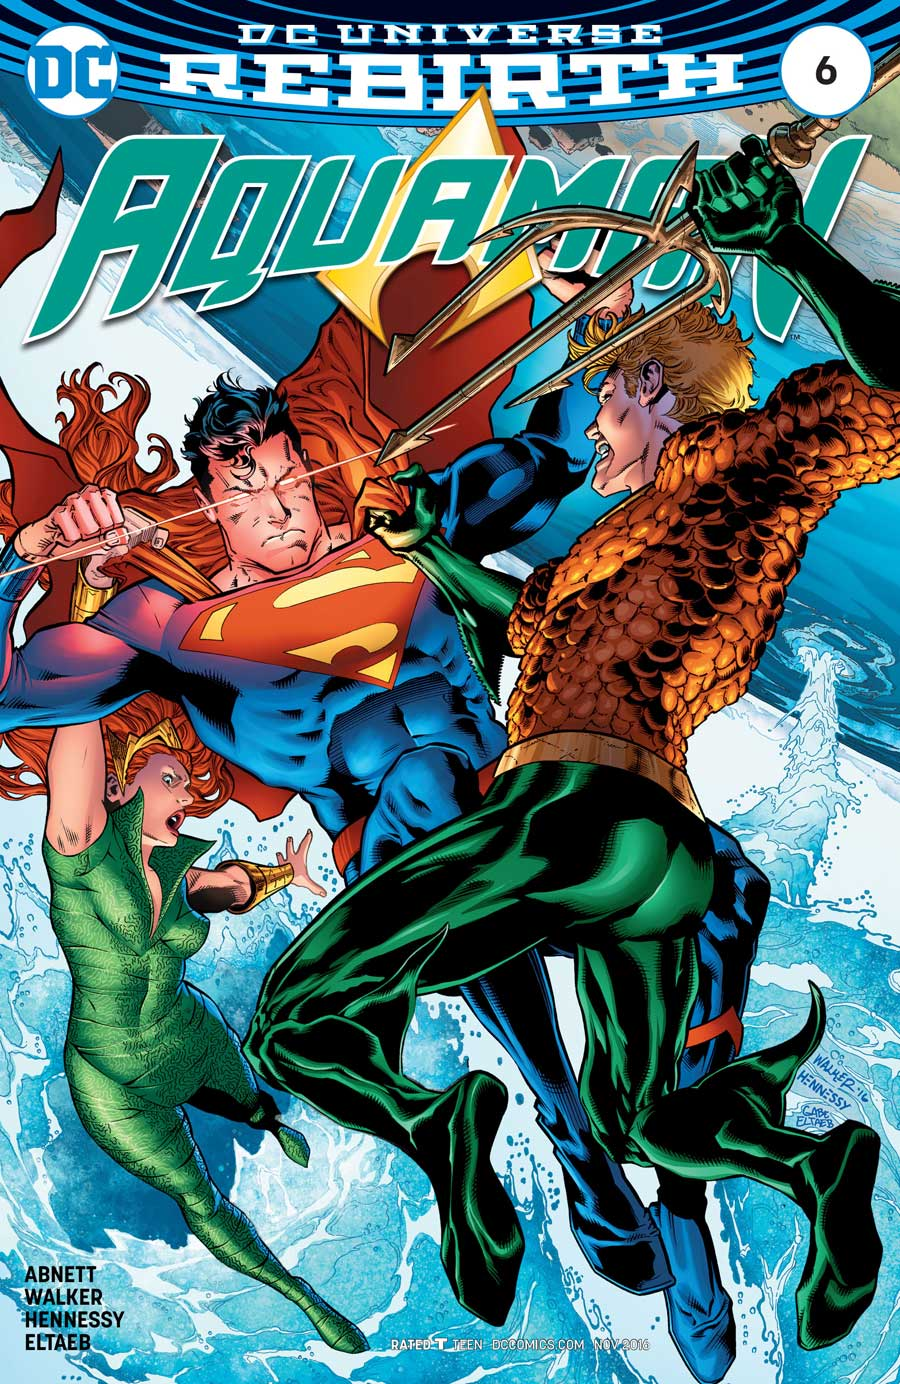 Aquaman #6 by Dan Abnett, Brad Walker and Andrew Hennessey